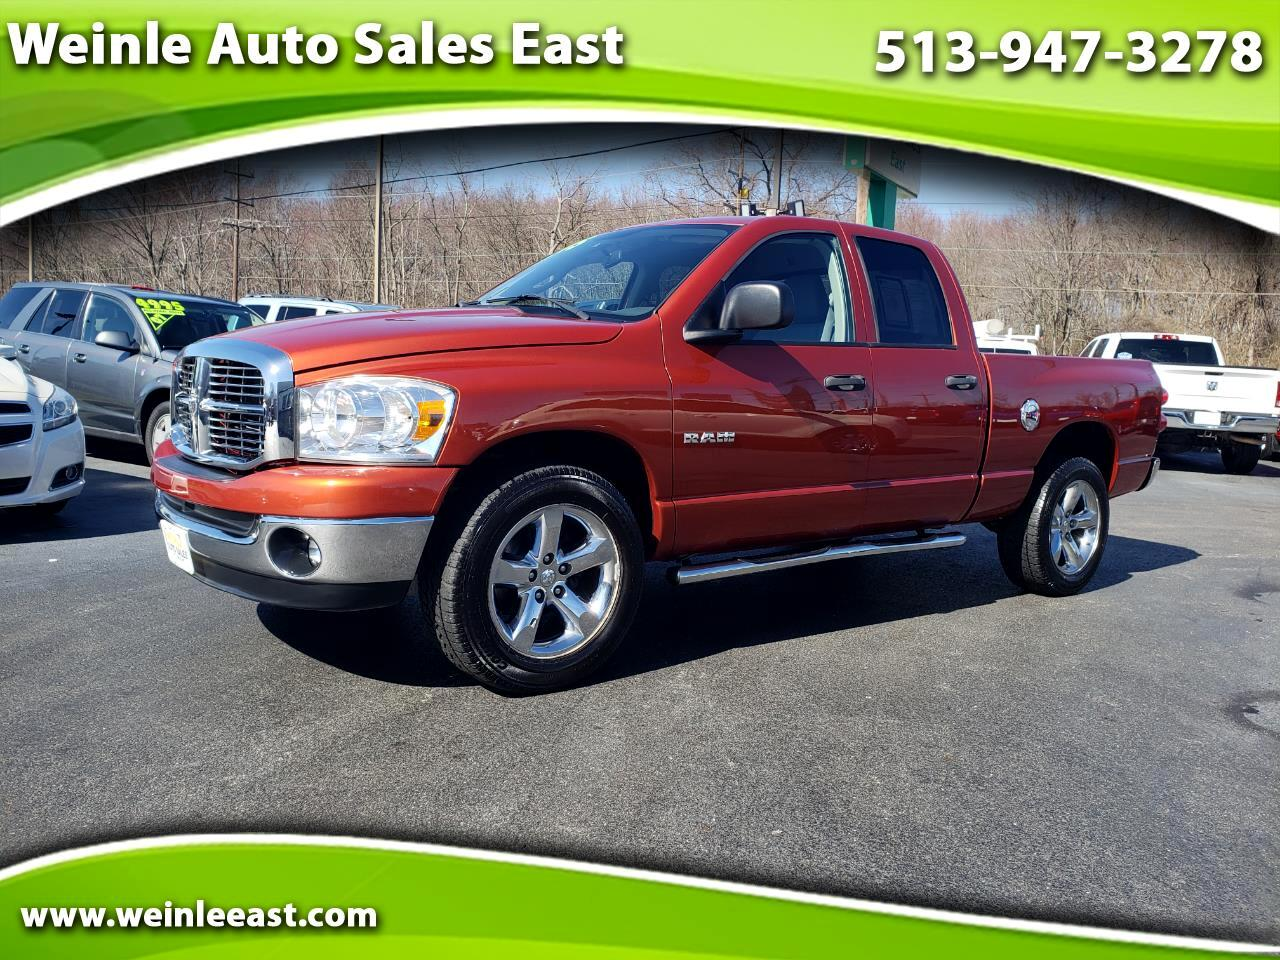 2008 Dodge Ram 1500 QUAD CAB BIG HORN LOW MILES SHARP